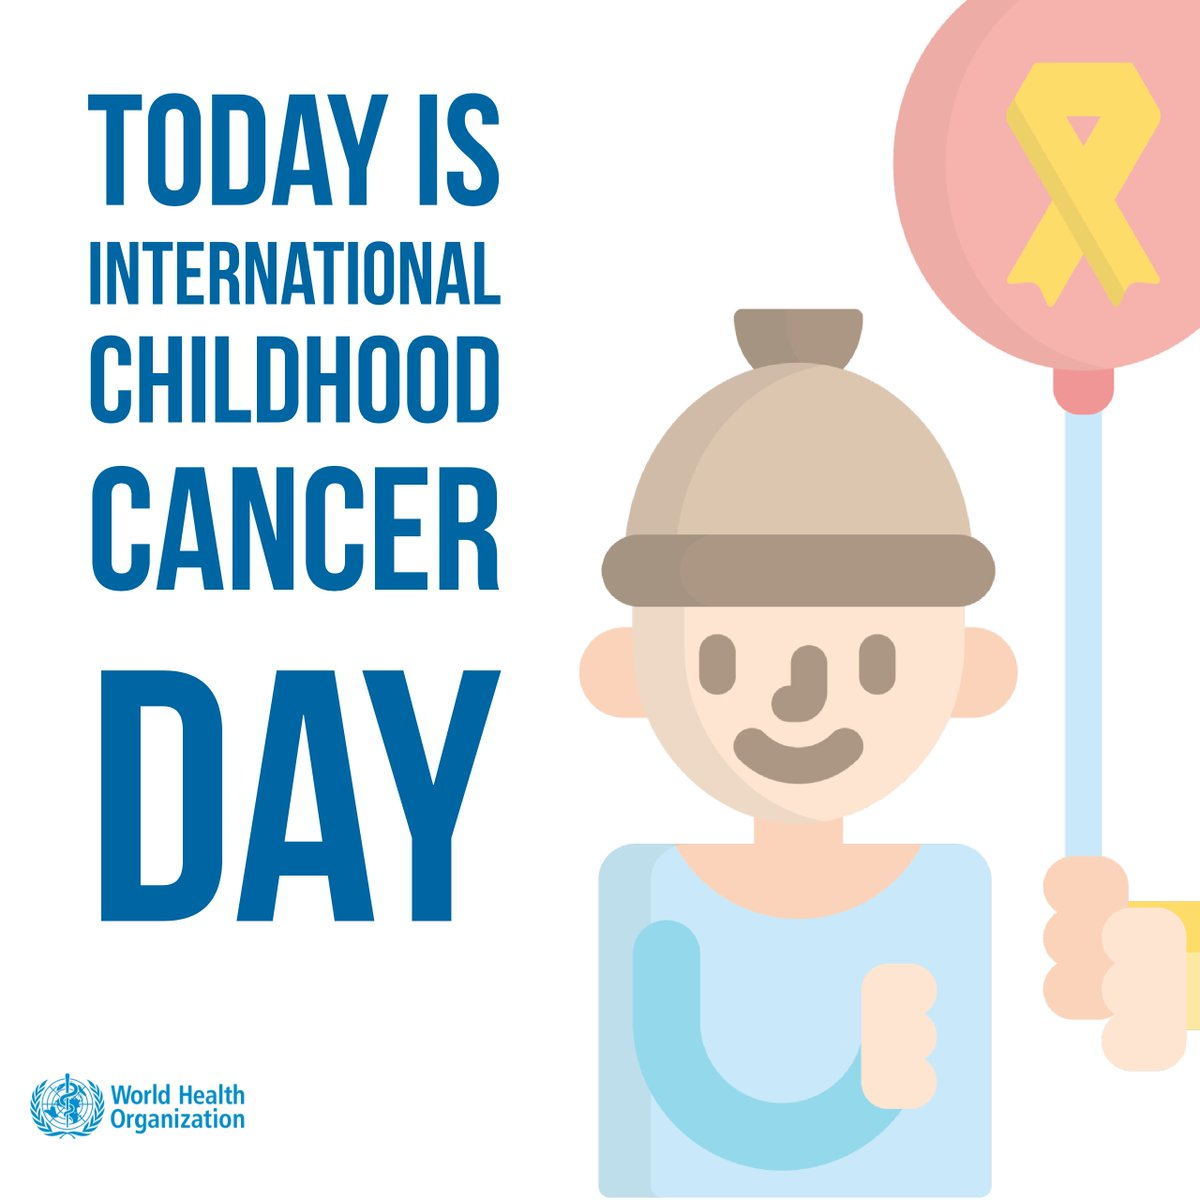 About 130 children & teenagers are diagnosed with cancer each year in Ireland. Less than 20 of these cases will be sarcoma. Treatment for children's cancer is aggressive & can involve chemotherapy, surgery, radiotherapy, targeted therapies, stem cell & bone marrow transplants.